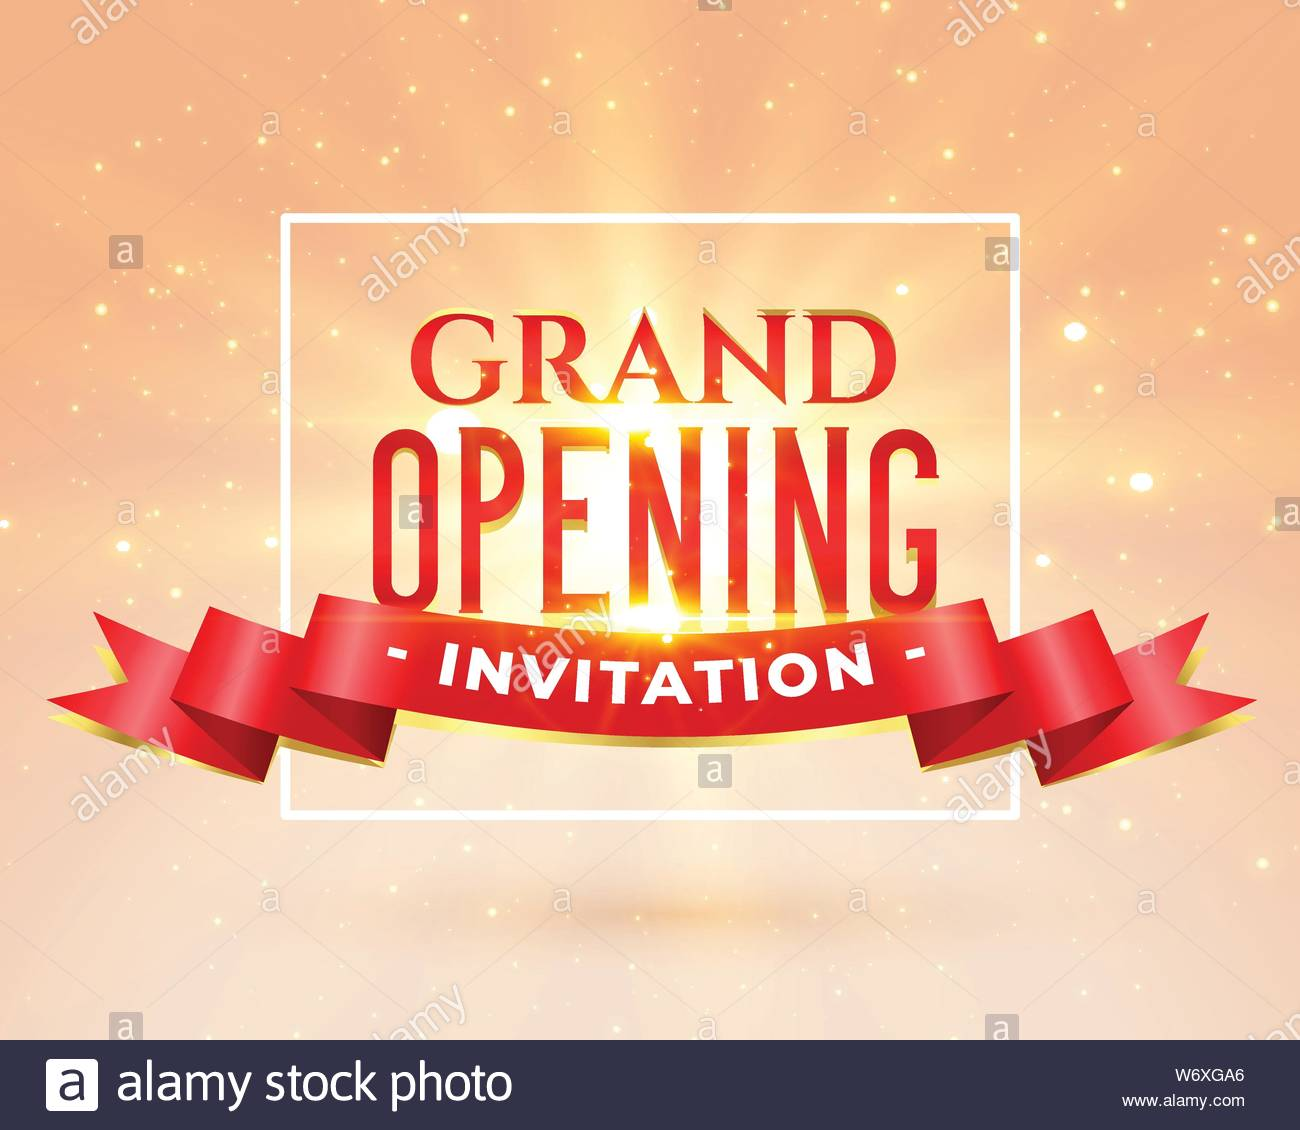 Grand Opening Party Invitation Card Design Stock Vector Art